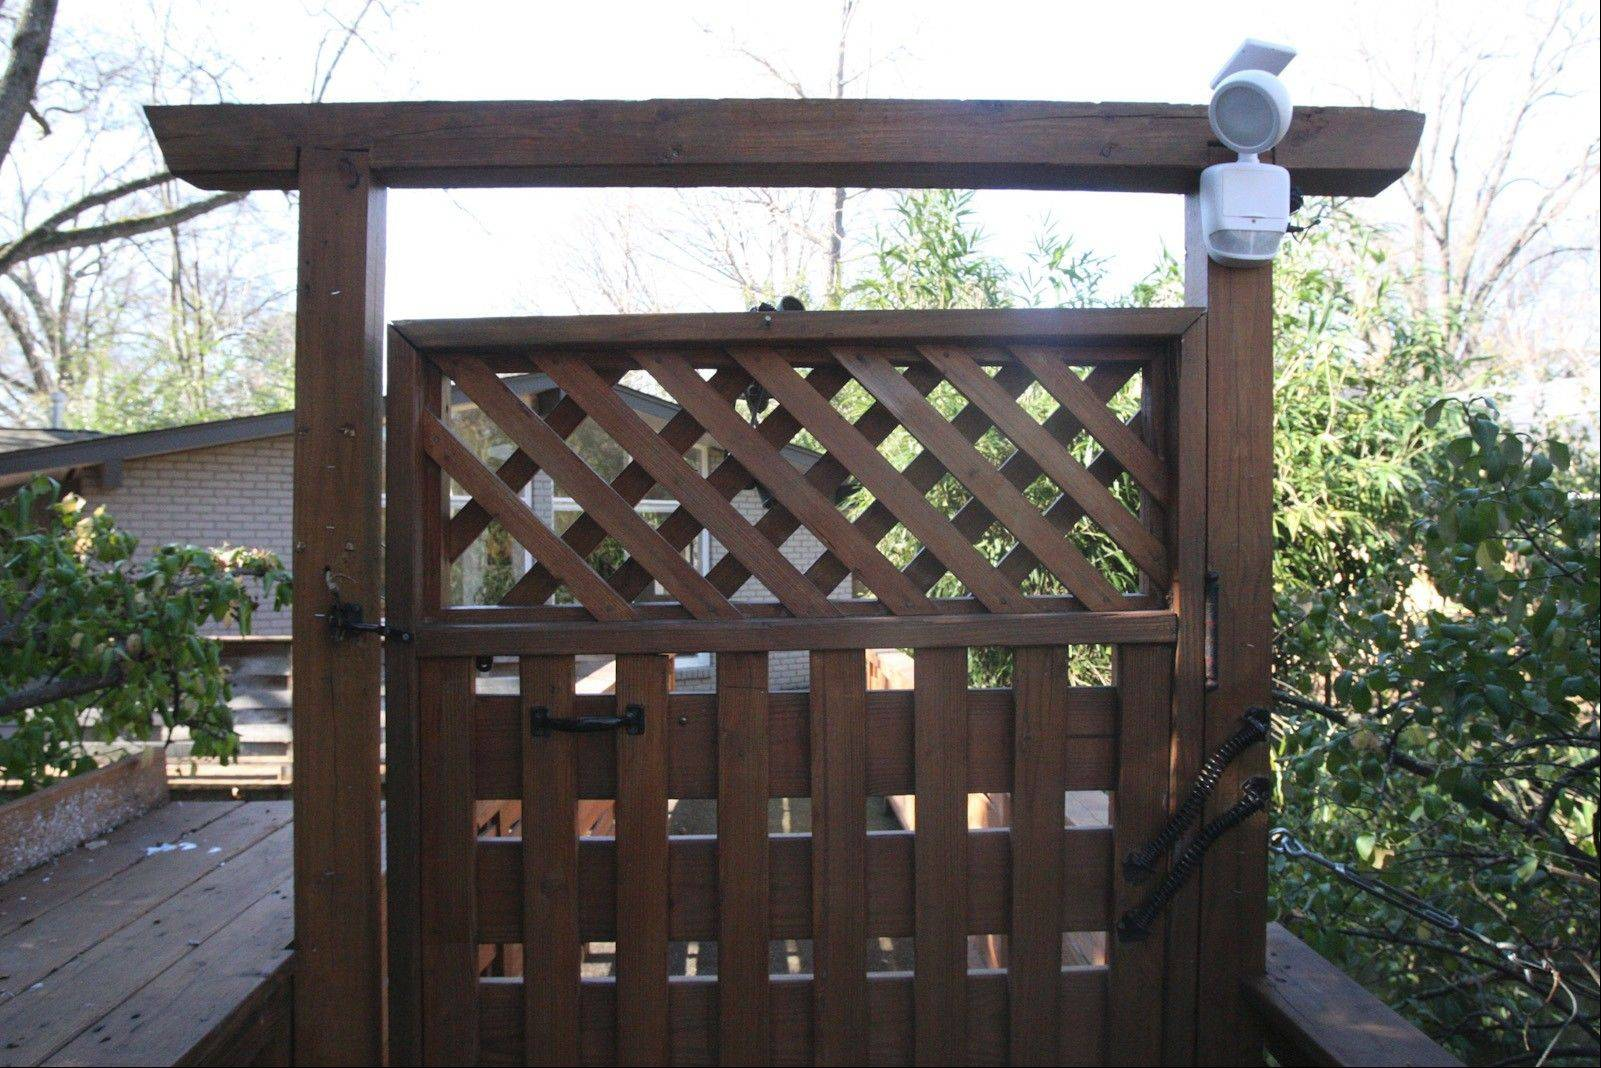 A wooden gate in front of the Plekon home serves as an entrance to the property where the bridge meets the sidewalk and a parking area. It reflects a Japanese style incorporated into the landscaping.